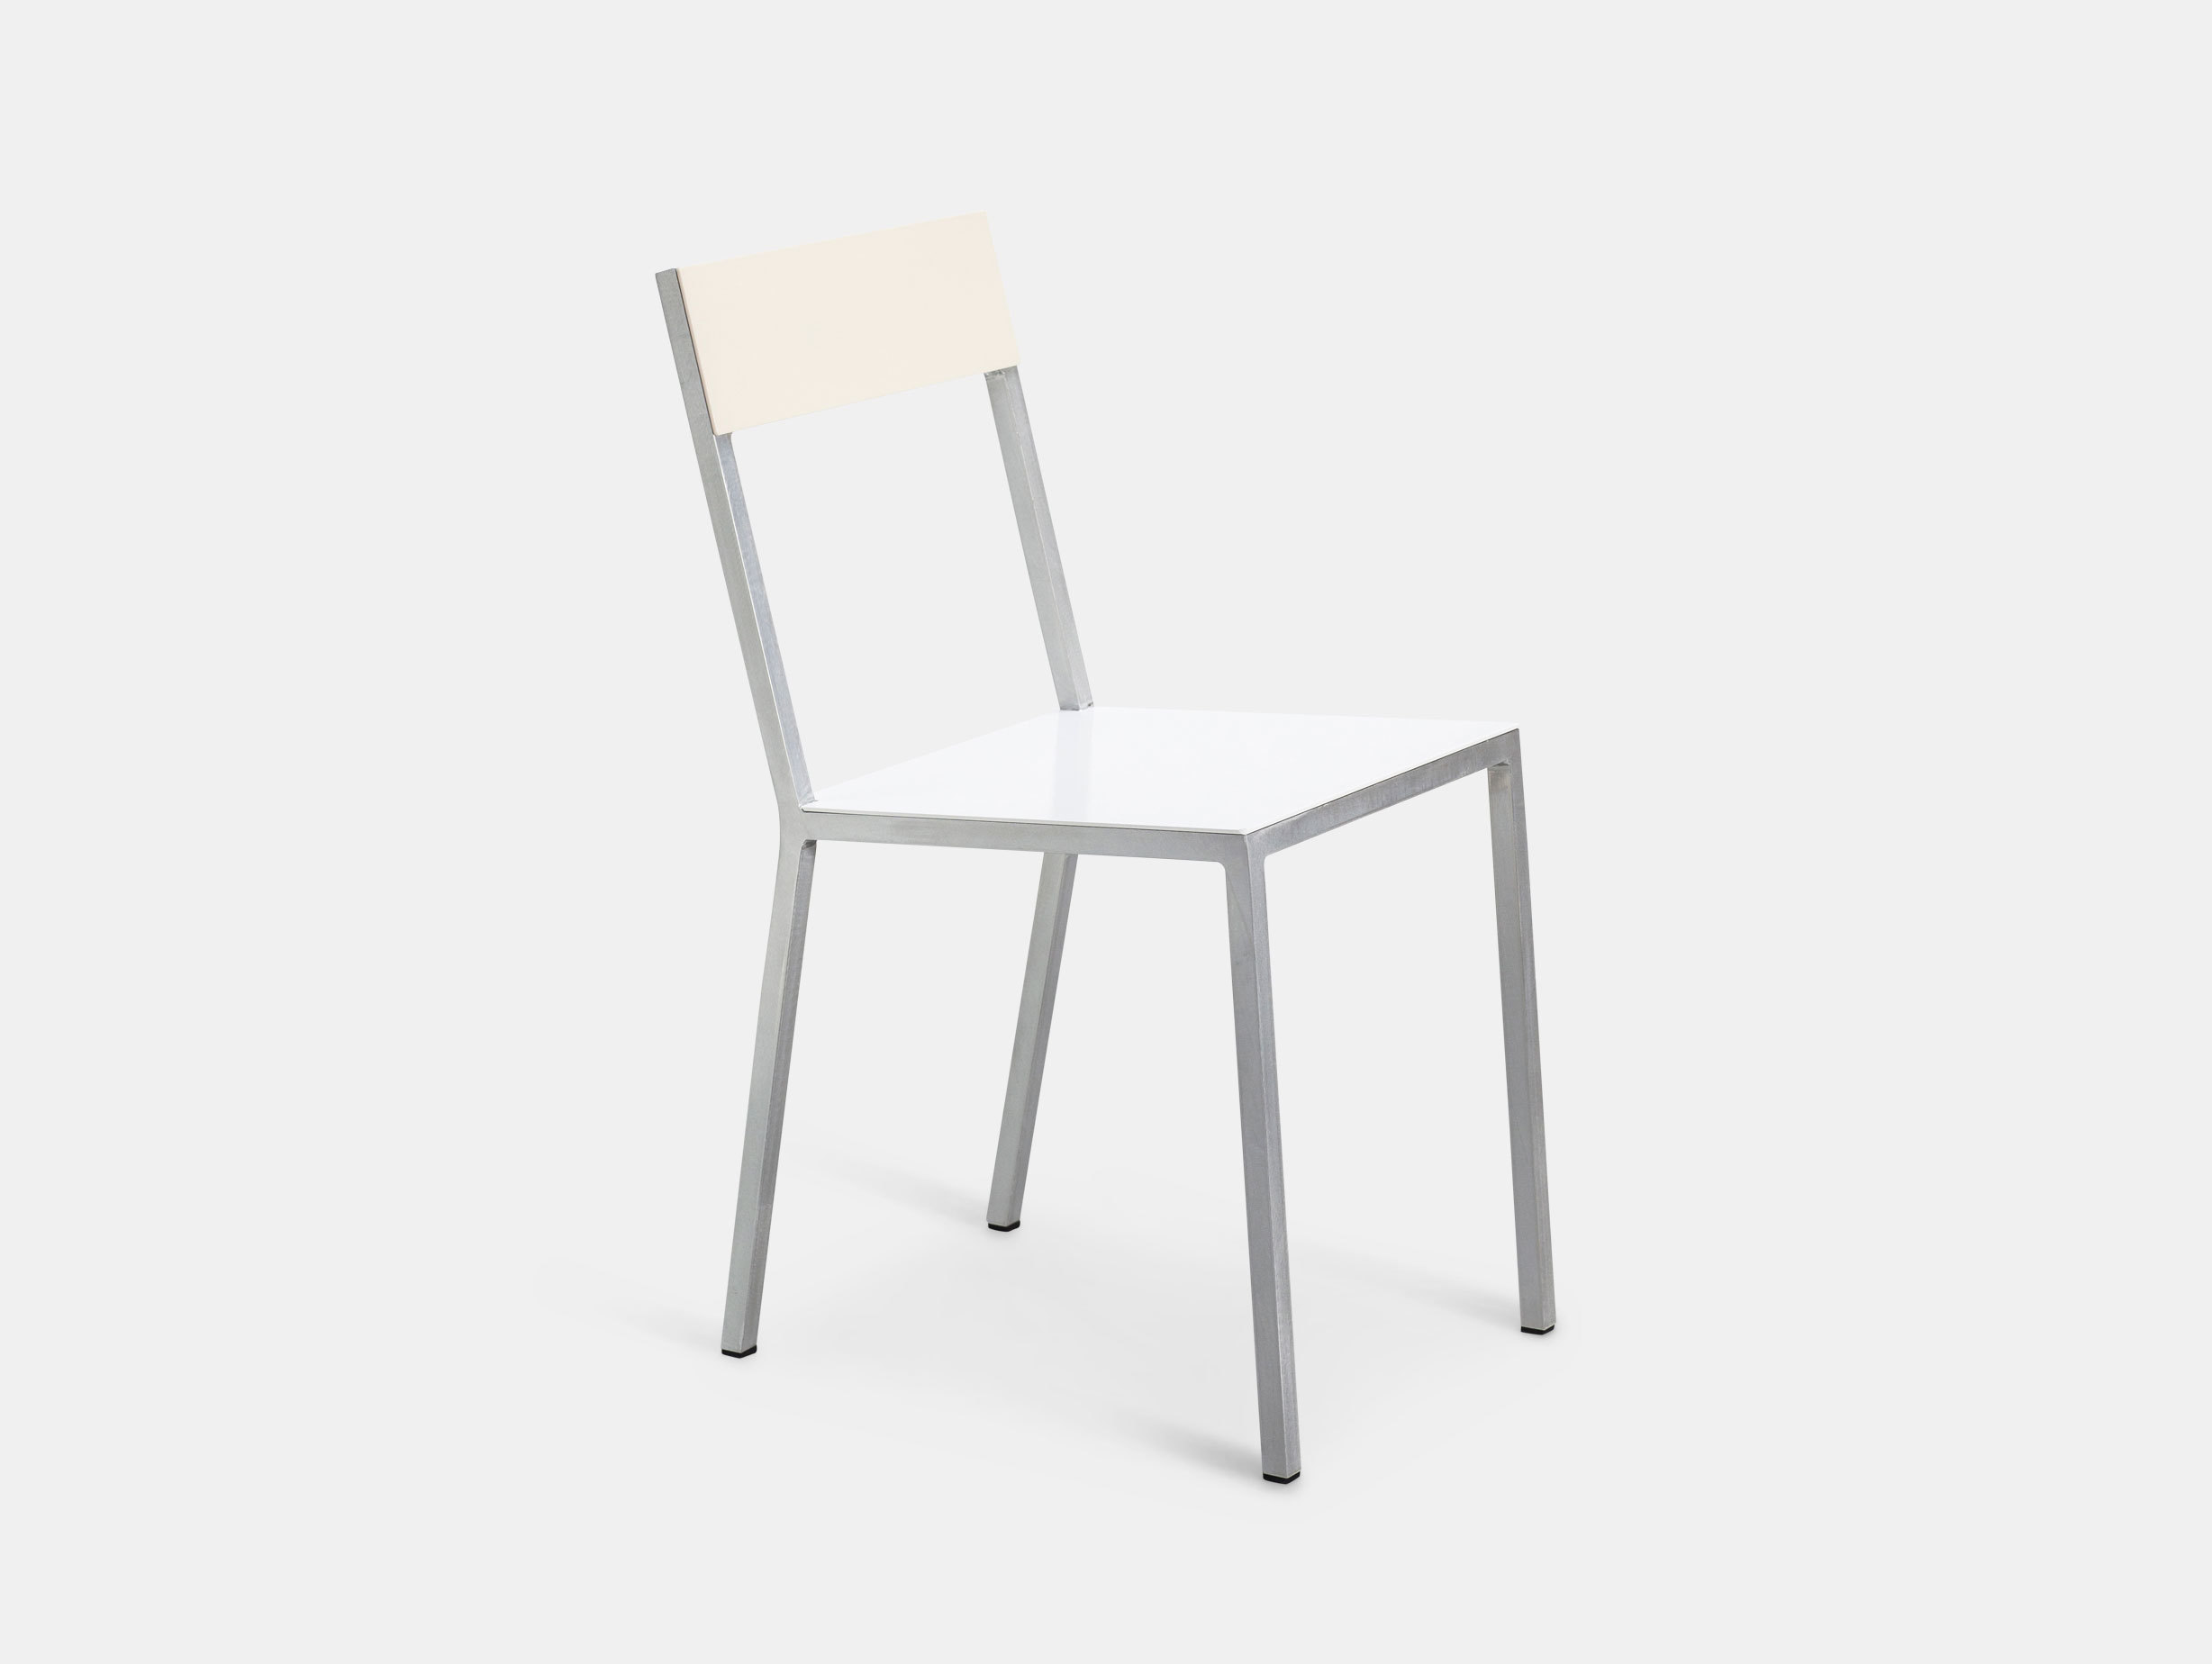 Alu Chair image 14